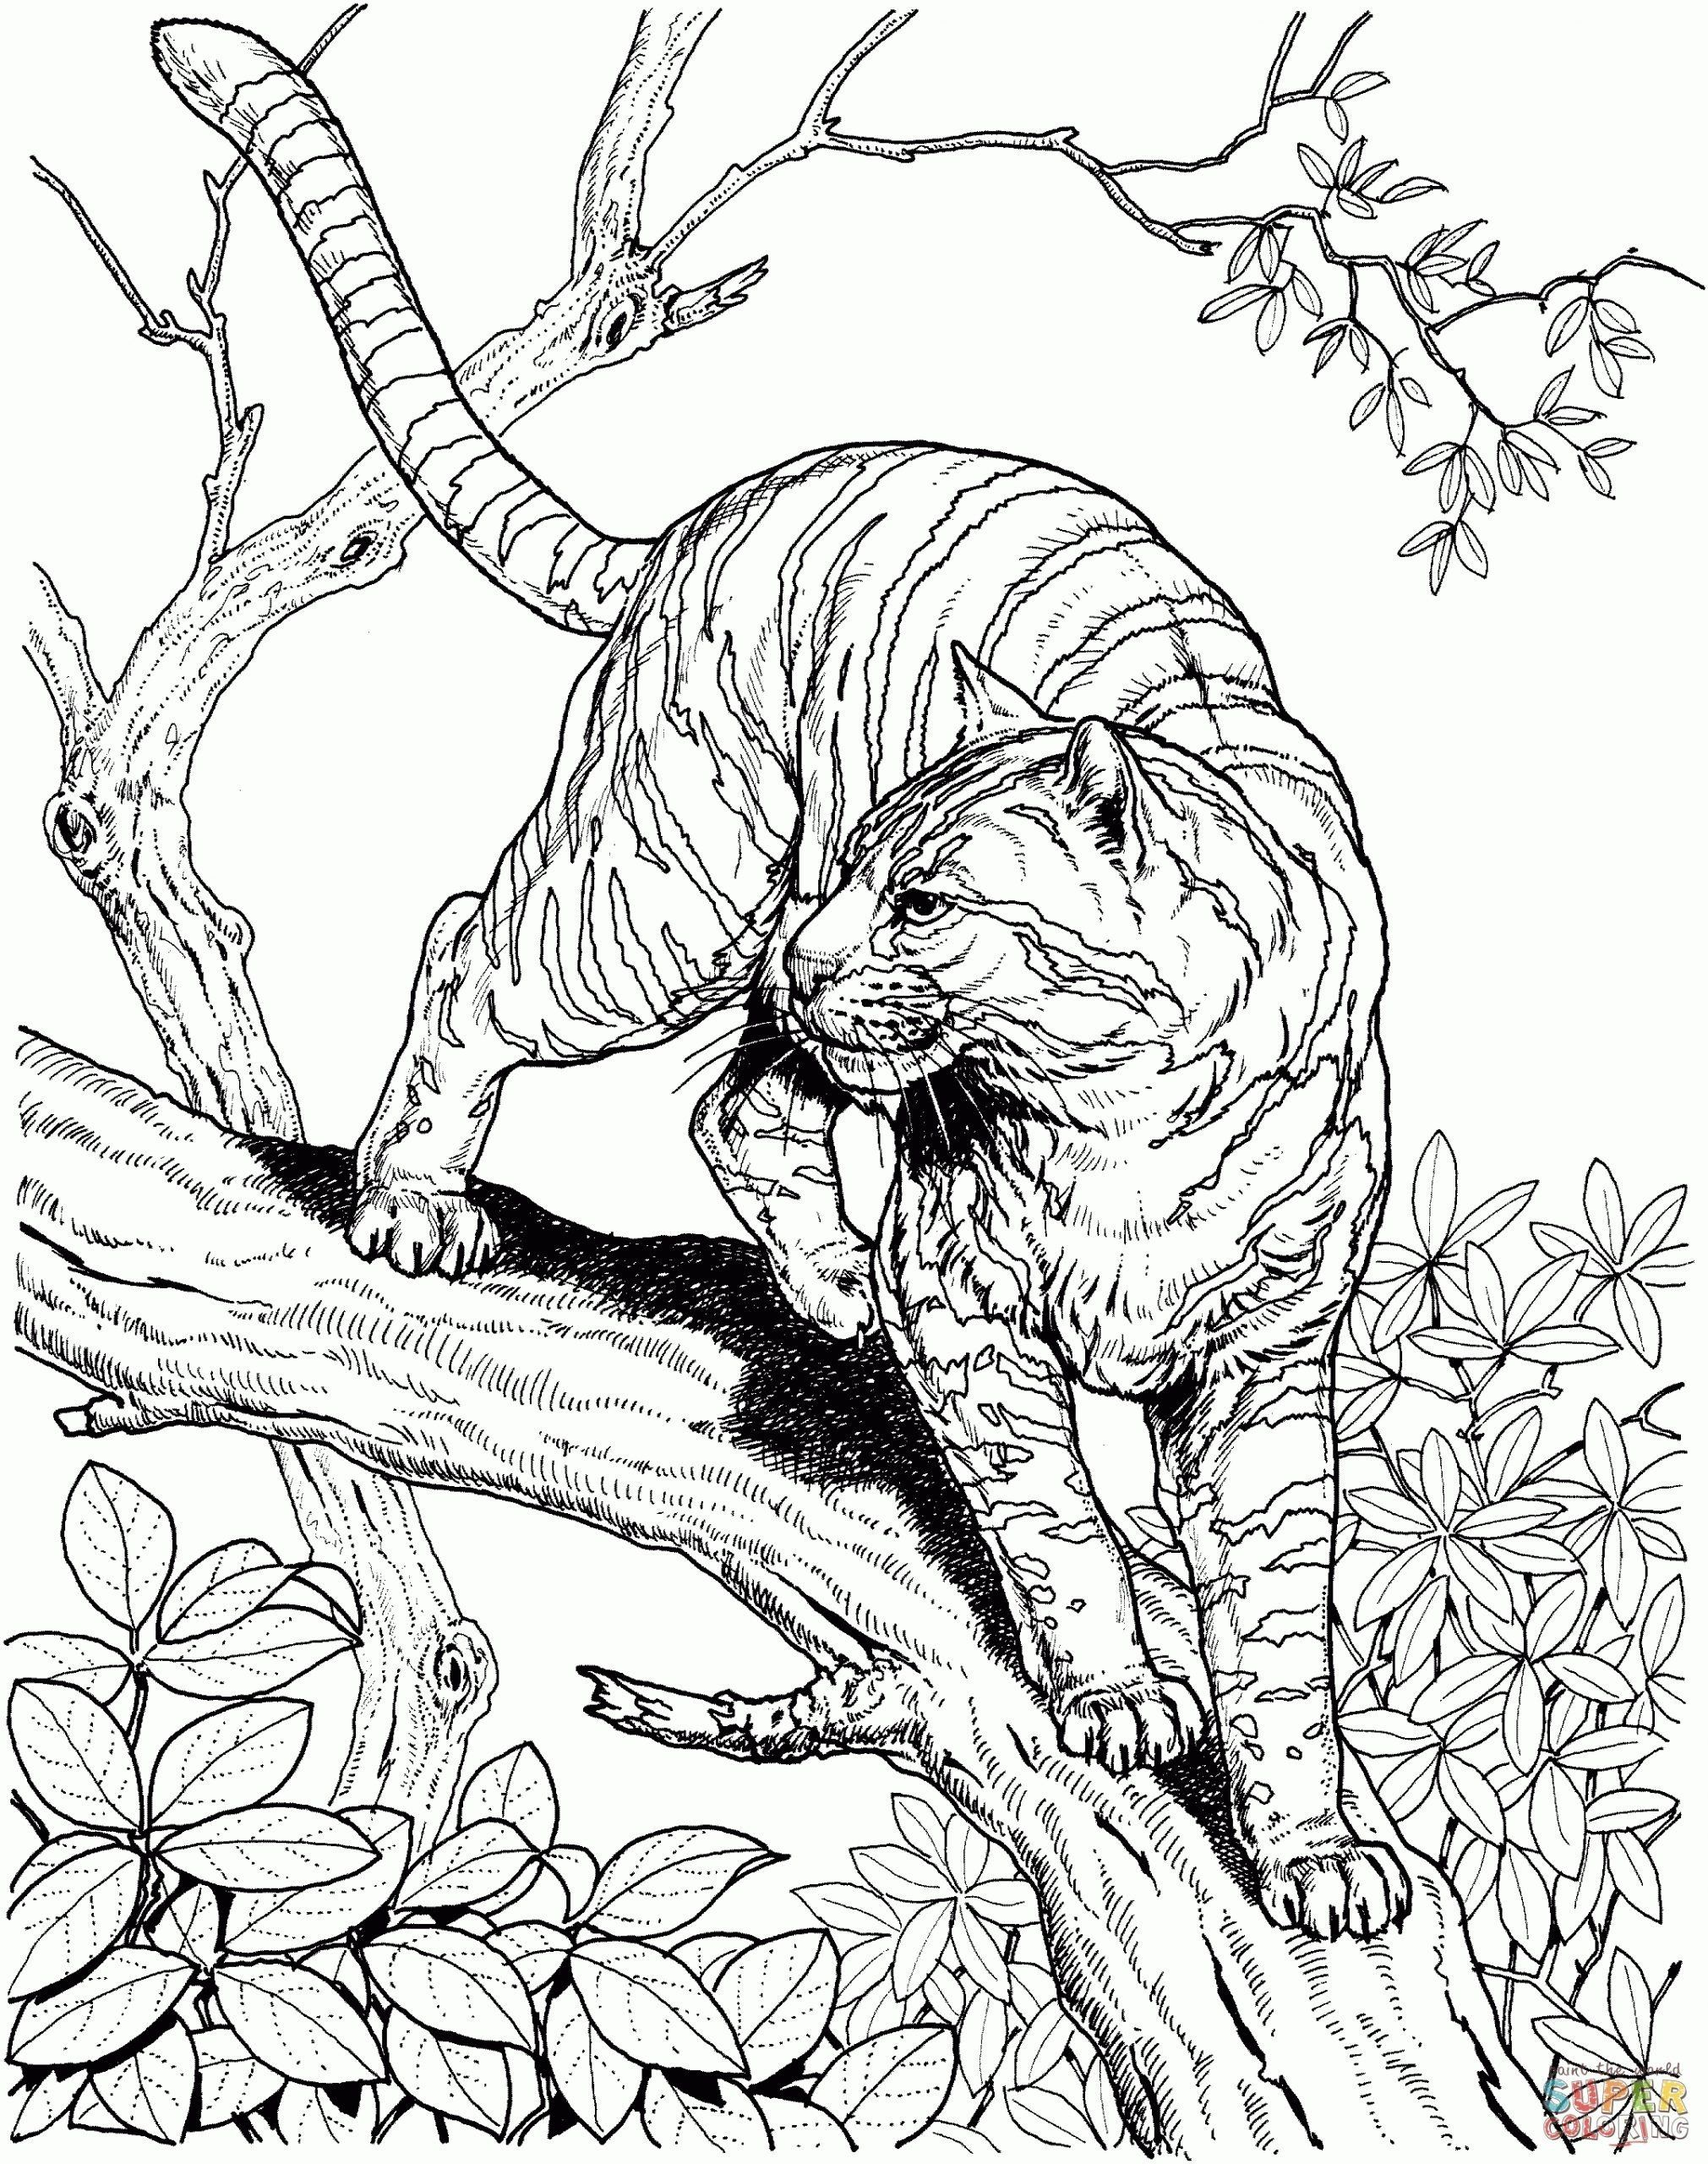 Printable Coloring Pictures Of Animals Coloring Jungle Animals Coloring Pages Jungle Anim In 2020 Zoo Animal Coloring Pages Animal Coloring Pages Jungle Coloring Pages